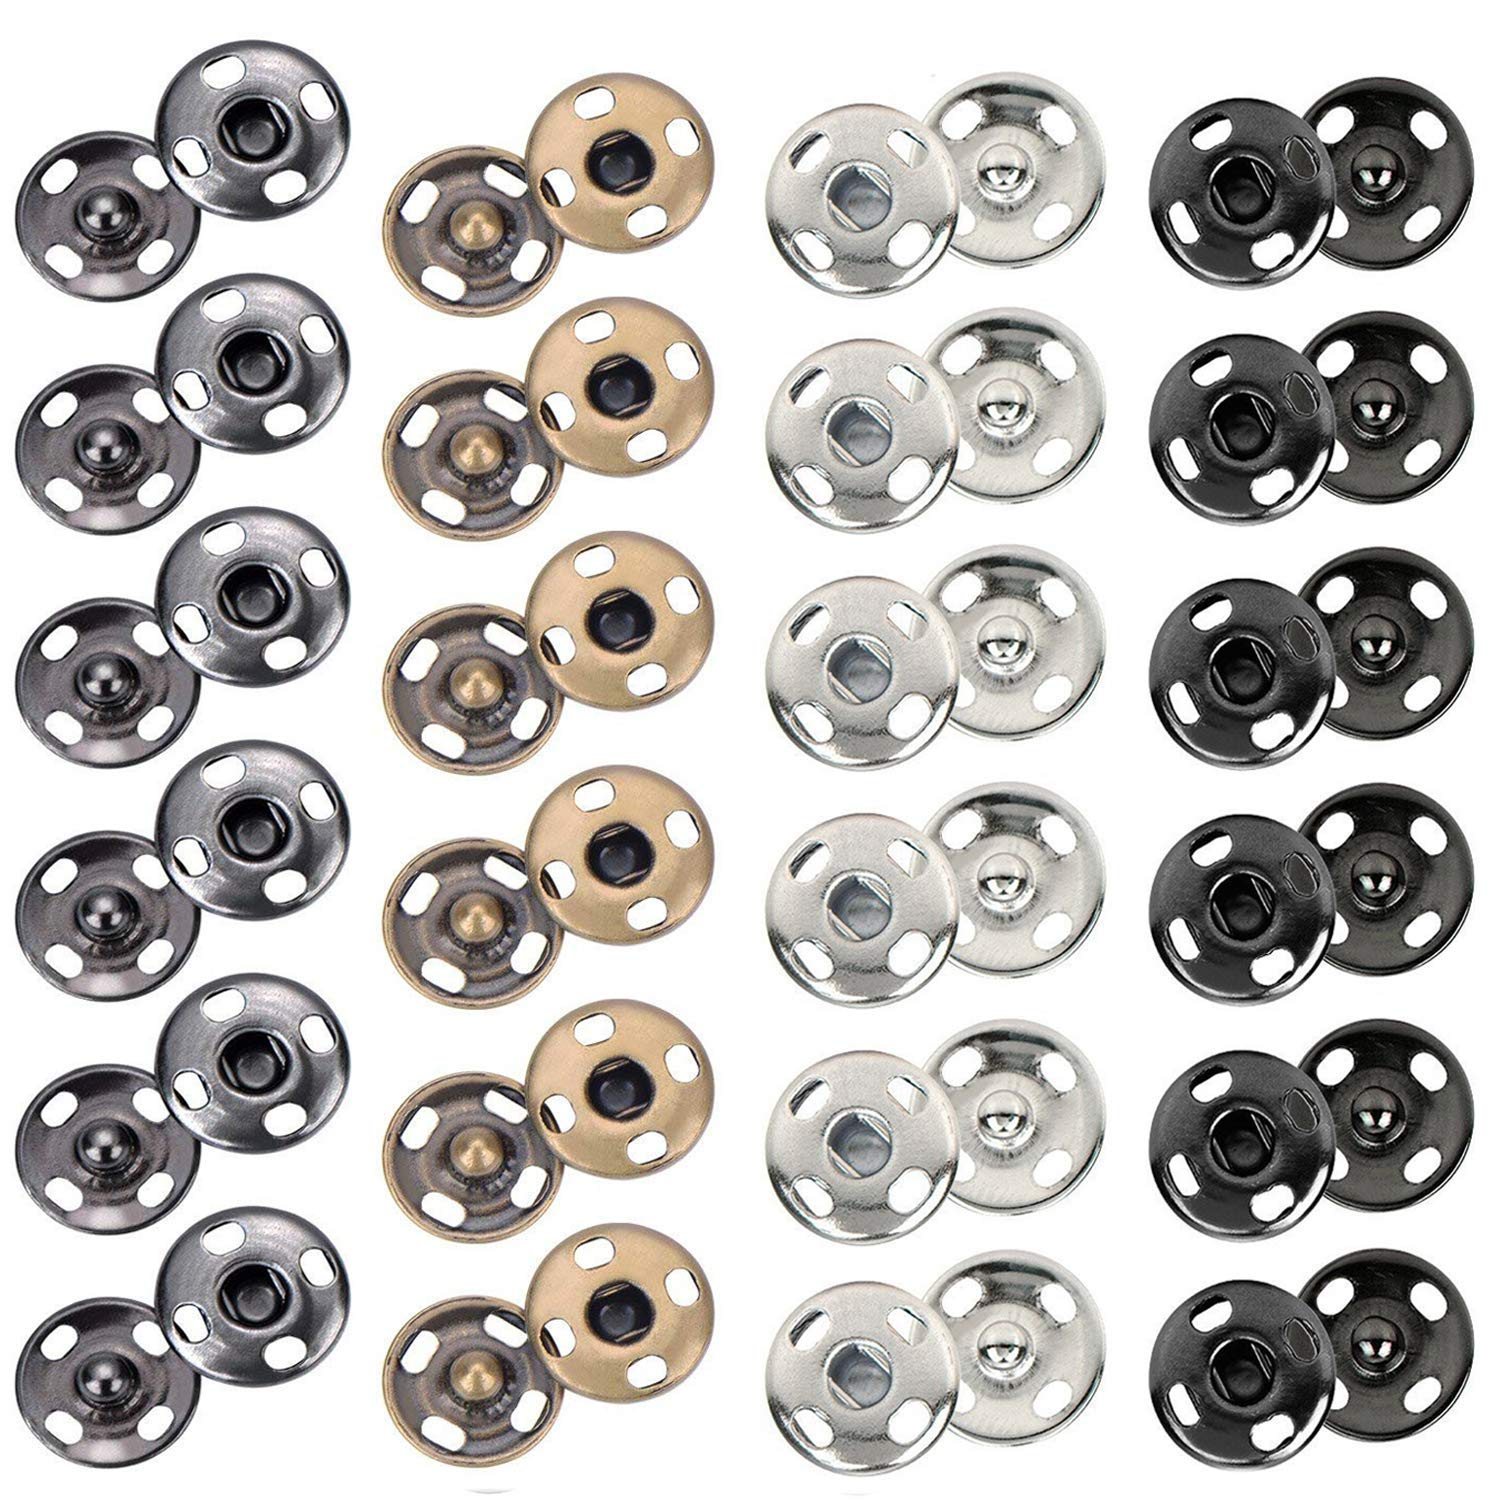 Kenkio 200 Sets 10 mm Sew-on Snap Metal Snaps Fasteners Press Studs Buttons for Sewing Clothing, 4 Colors